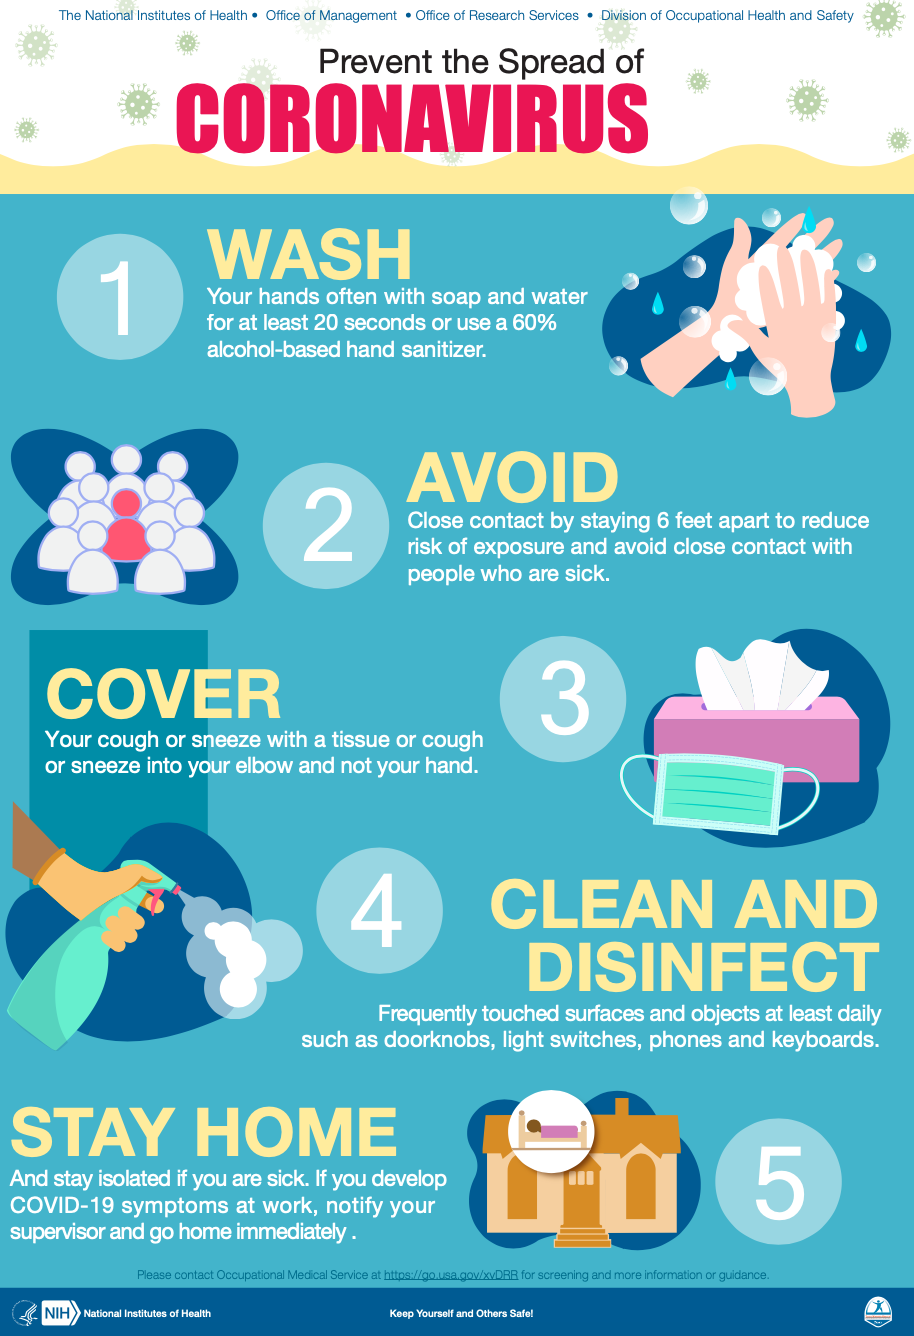 Prevent spread of COVID  by washing hands, staying 6 feet apart, wearing a face mask, disinfecting commonly touched surfaces and staying home when sick